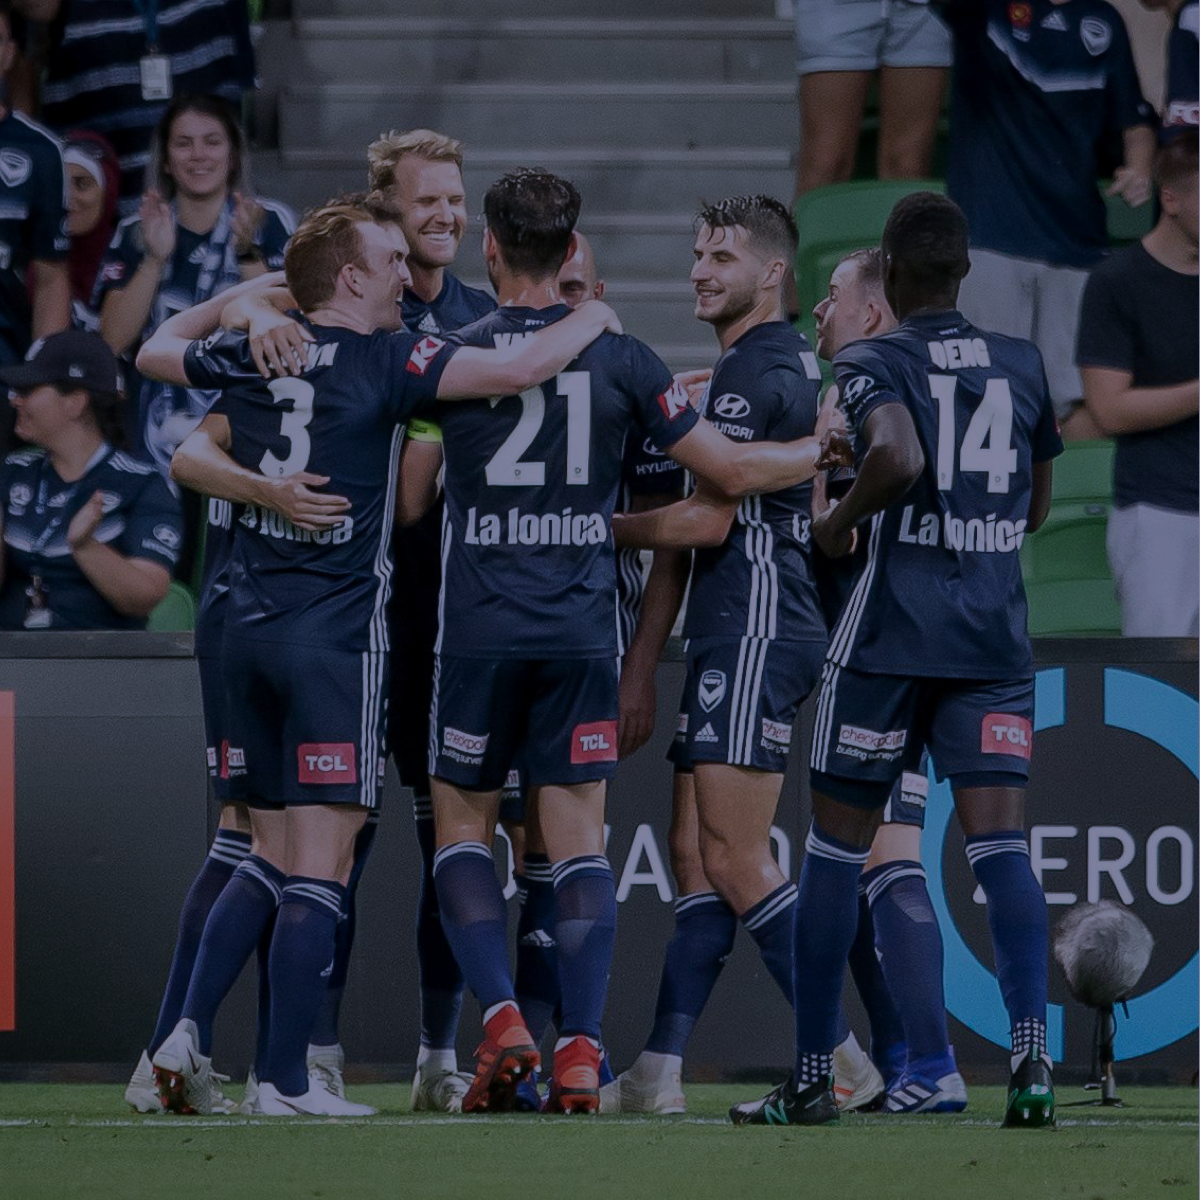 MELBOURNE VICTORY SUPPORT - Melbourne Victory proudly supports the Charan Foundation in its endeavours to encourage young people to be involved in sport by providing financial assistance to individuals, clubs, and programs.